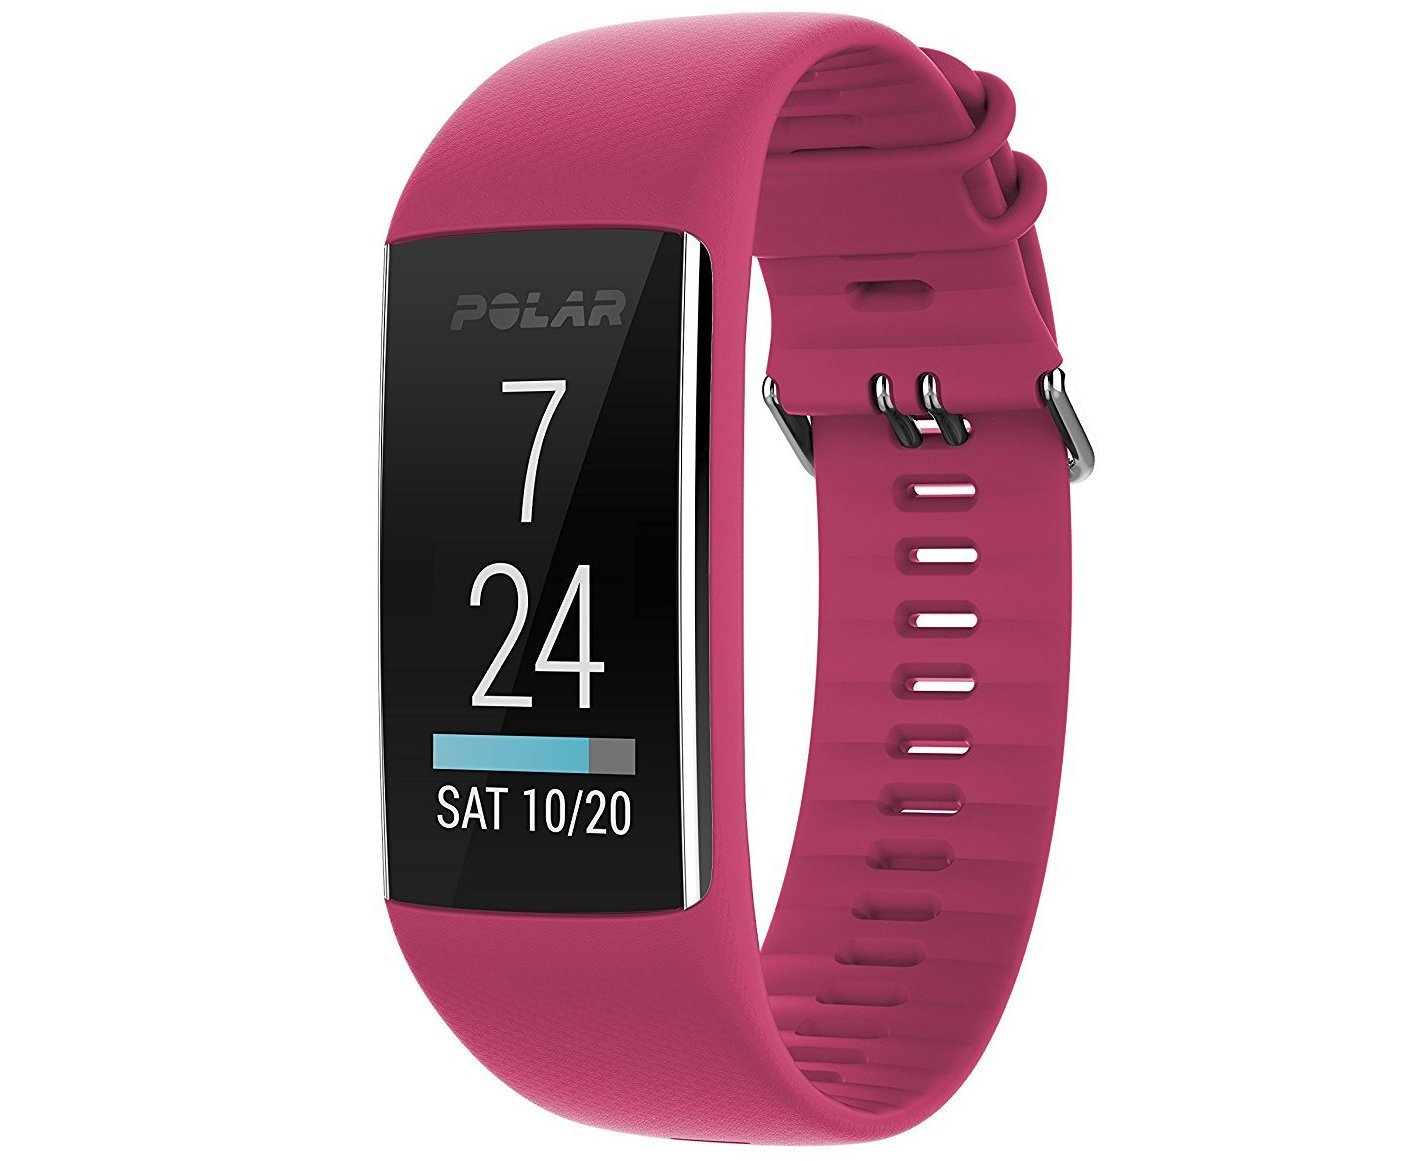 Polar A370 Fitness Tracker with 24/7 Wrist Based Heart Rate Monitor, Pink, Small by Polar